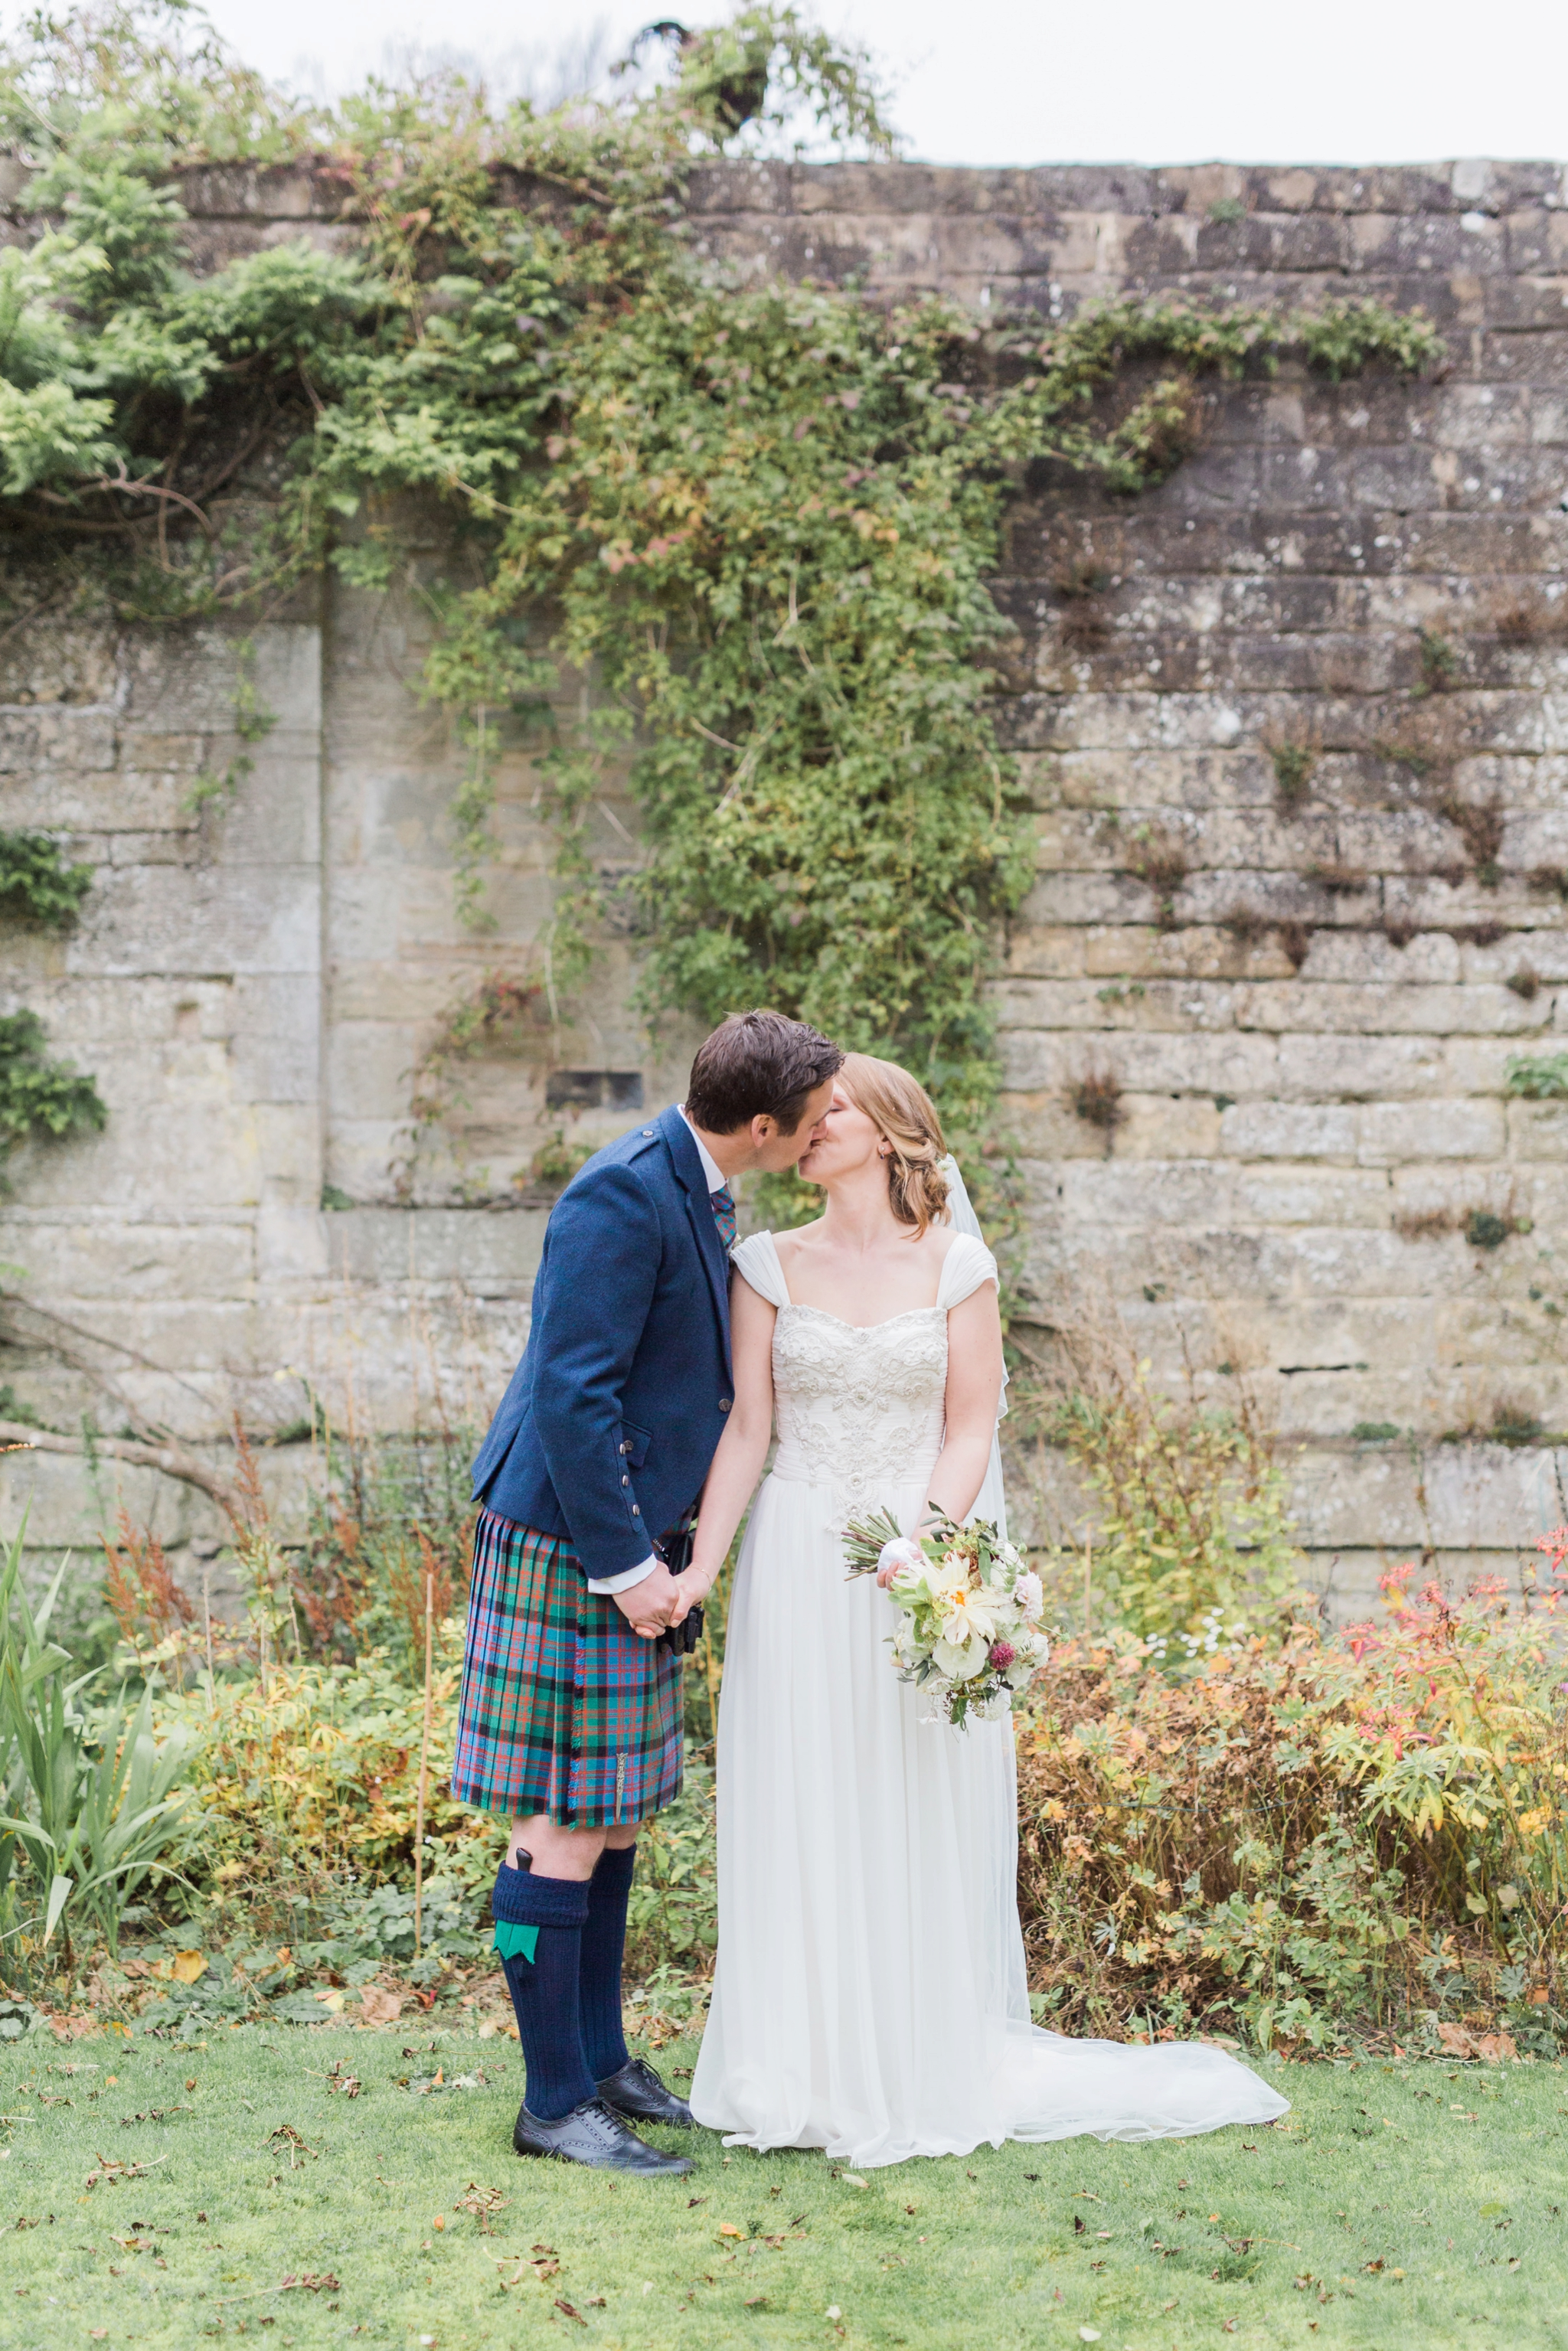 Suzanne_li_photography_kirknewton_wedding_0036.jpg